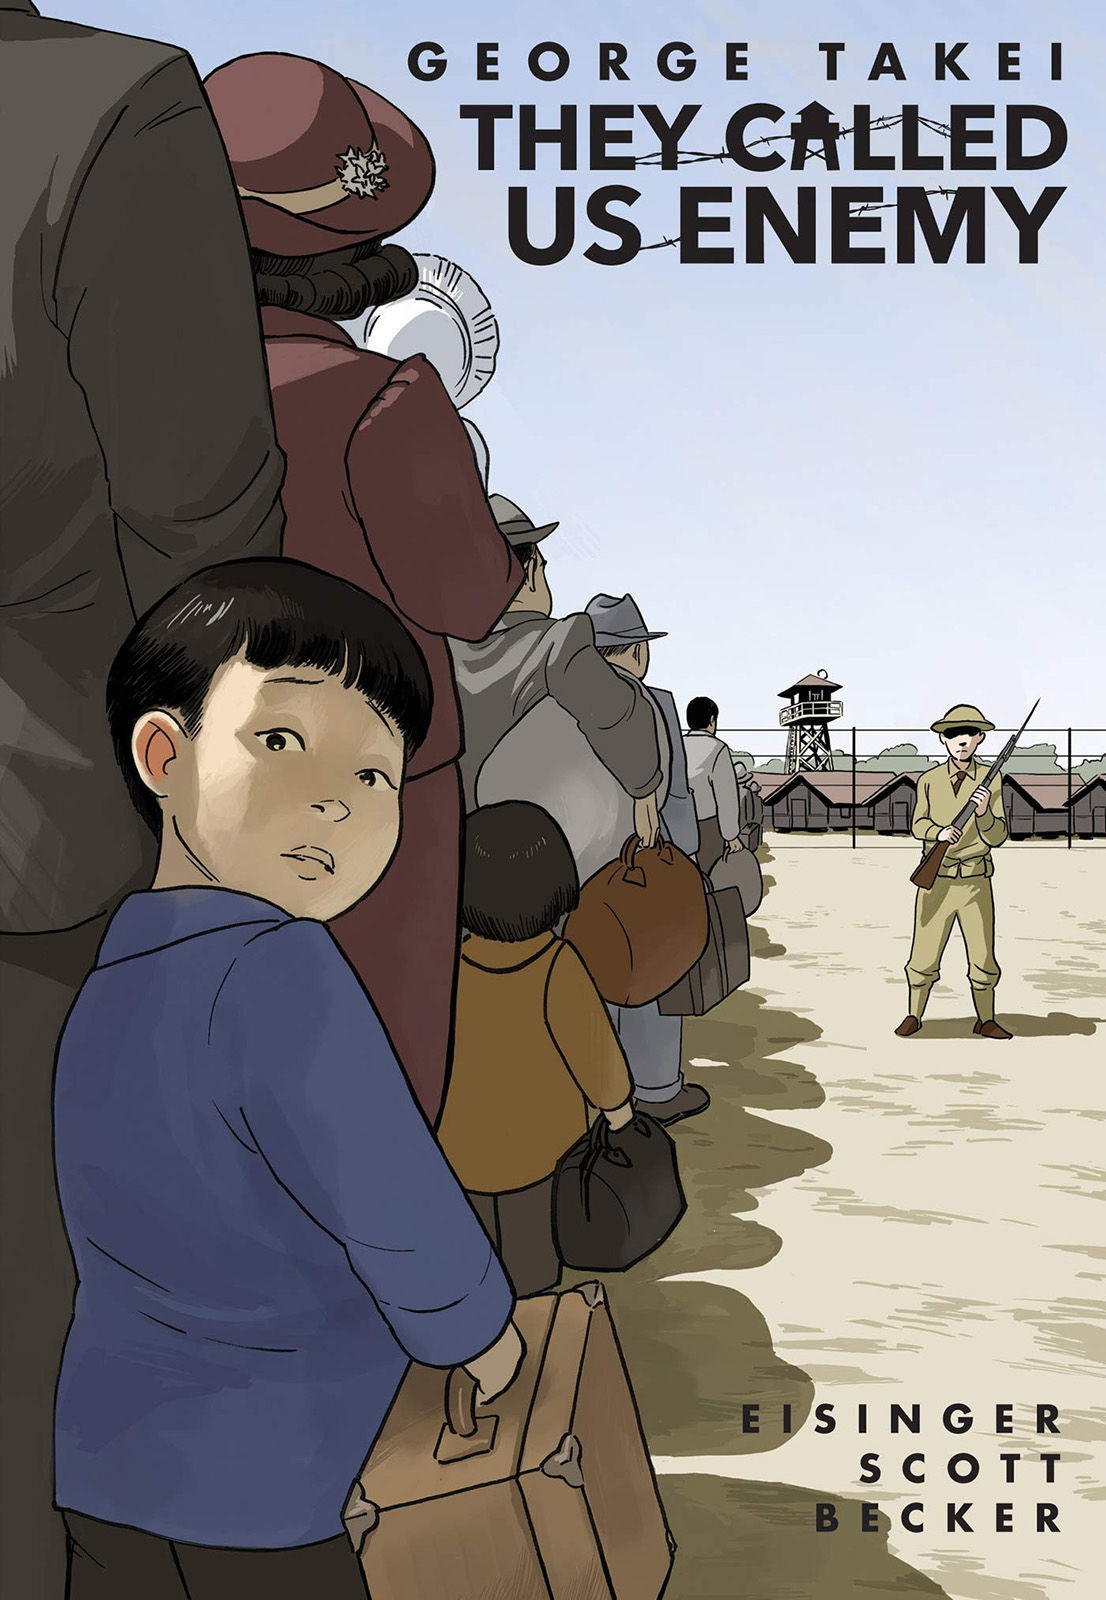 BOOKS-BOOK-TAKEI-THEYCALLED-USENEMY-MCT